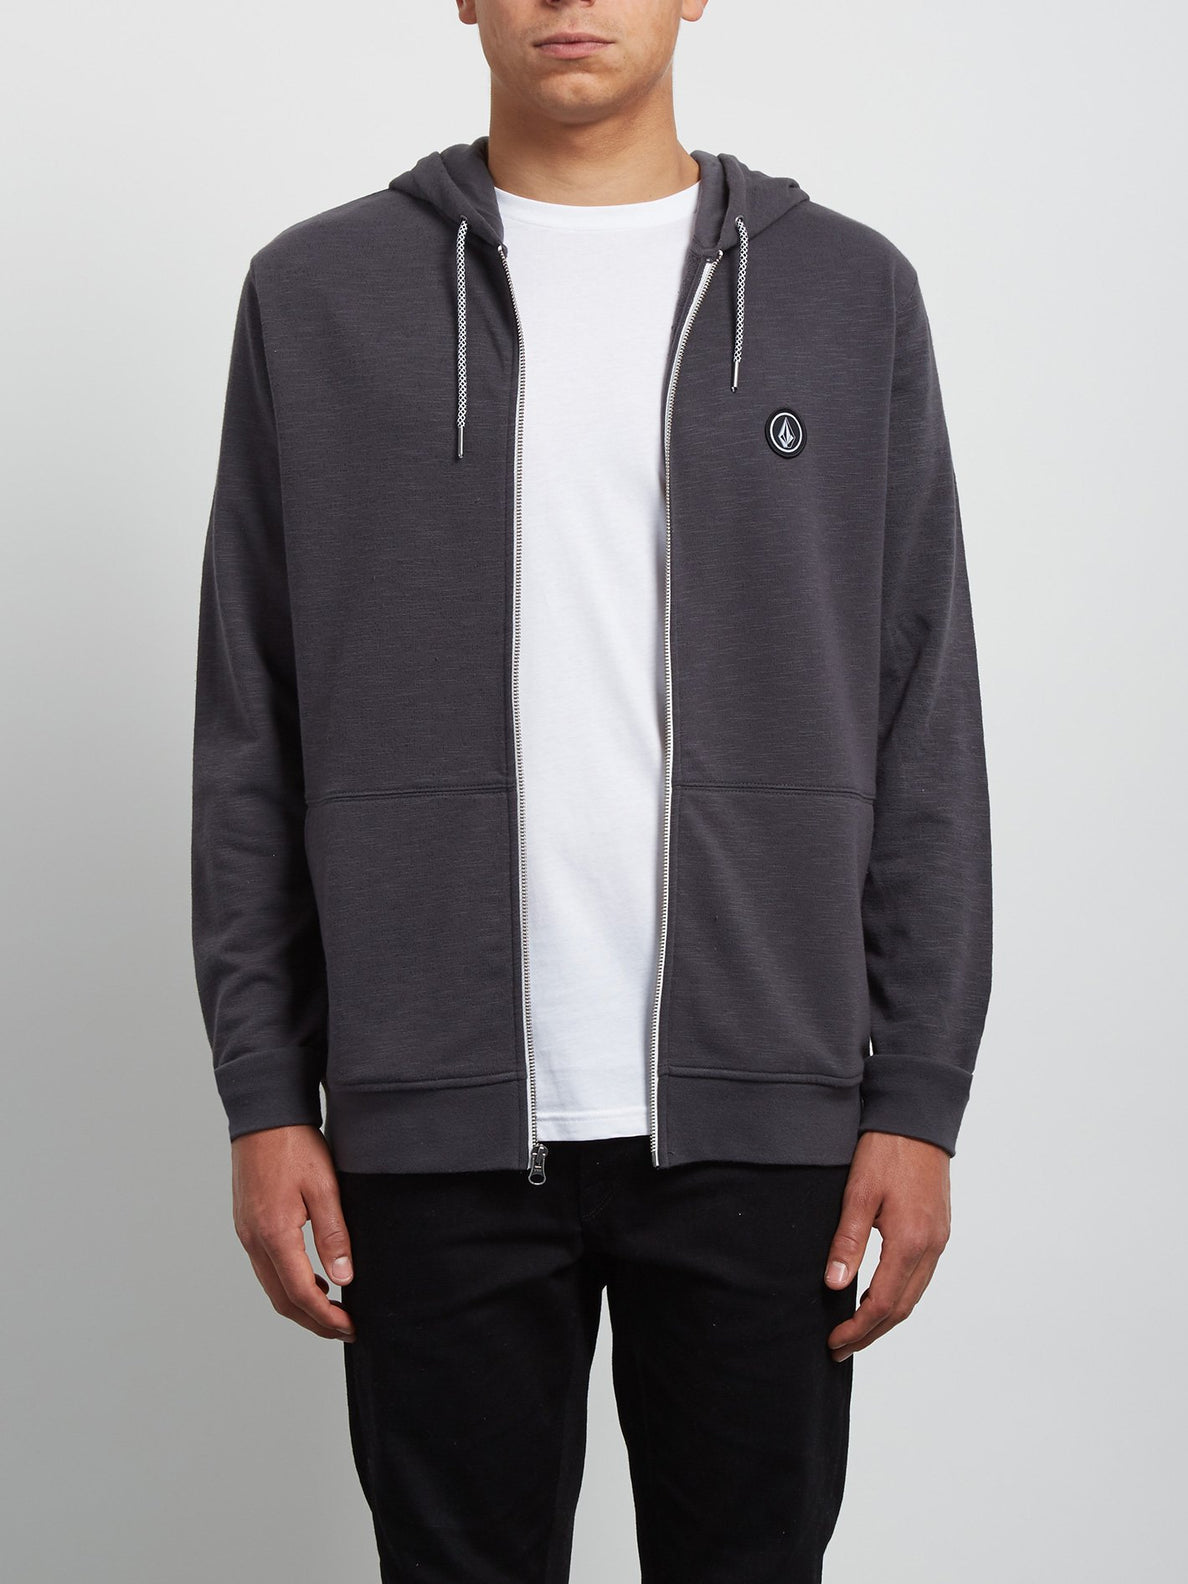 Litewarp Zip Hoodie - Heather Black